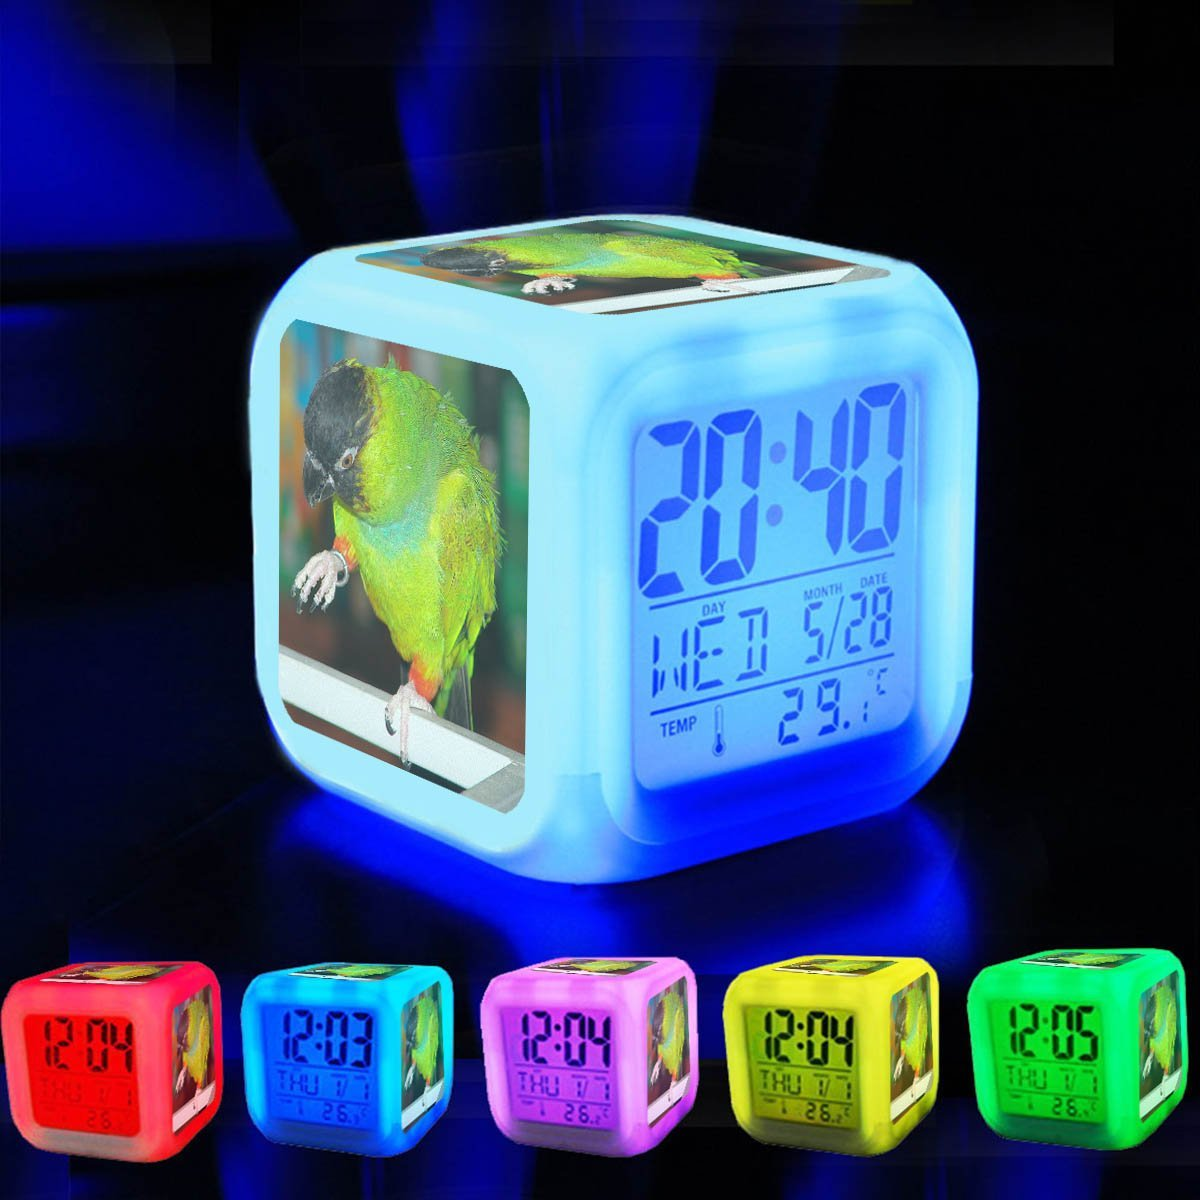 Alarm Clock 7 LED Color Changing Wake Up Bedroom with Data and Temperature Display (Changable Color) Customize the pattern-242.Nandayus nenday -pet -front-8a